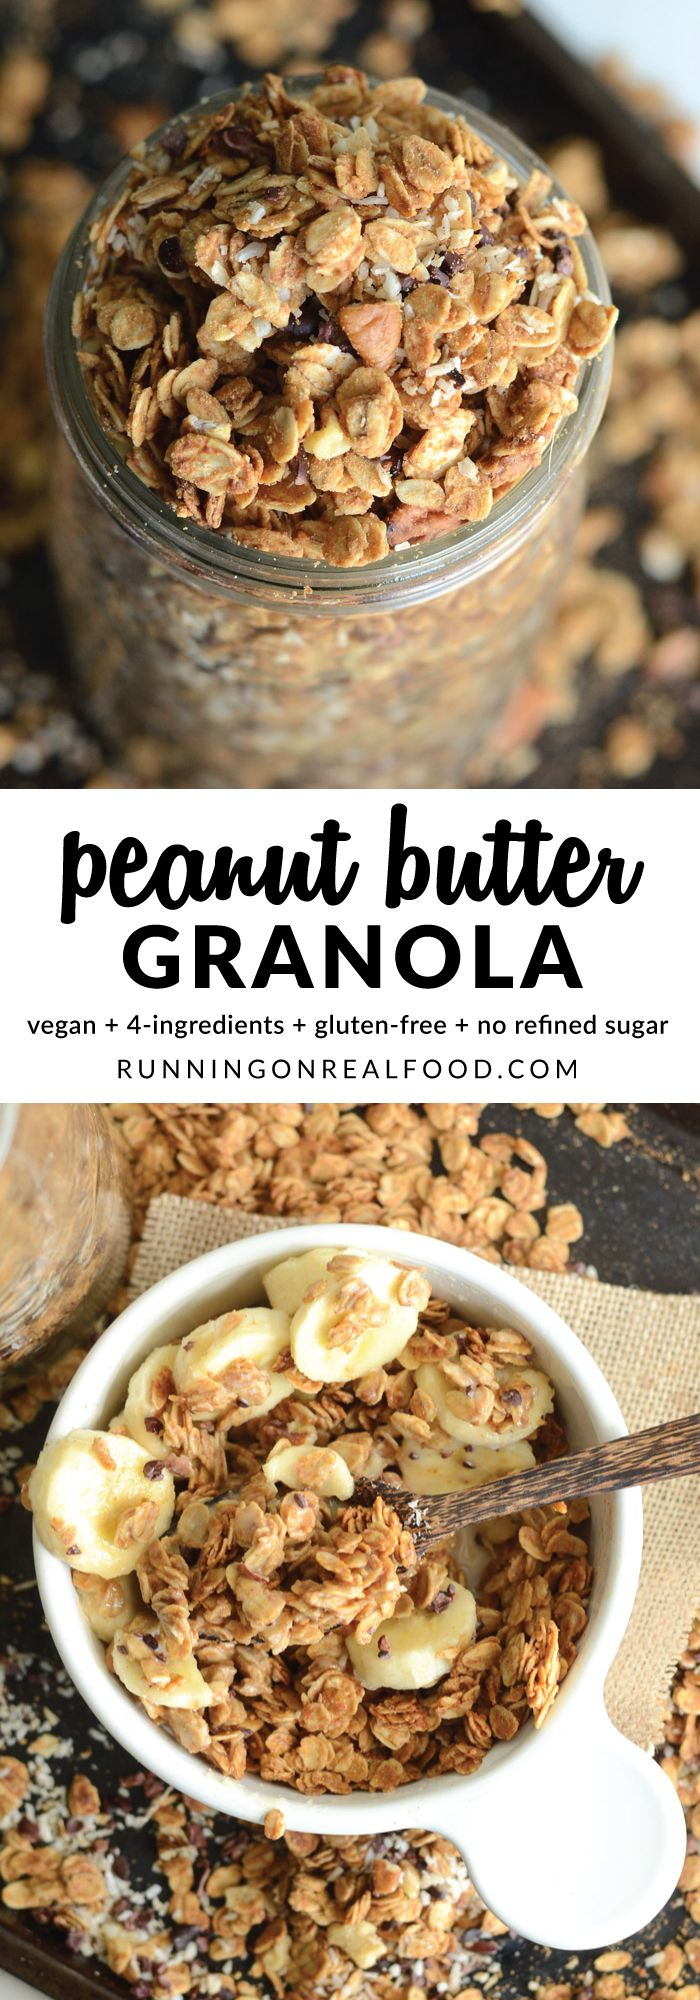 You only need 4 wholesome ingredients to make this crazy good Easy Peanut Butter Granola! It's amazing on it's own or even better with add-ins like nuts, chocolate chips and coconut! #ad #vegan #glutenfree  Get the recipe: http://runningonrealfood.com/peanut-butter-granola/